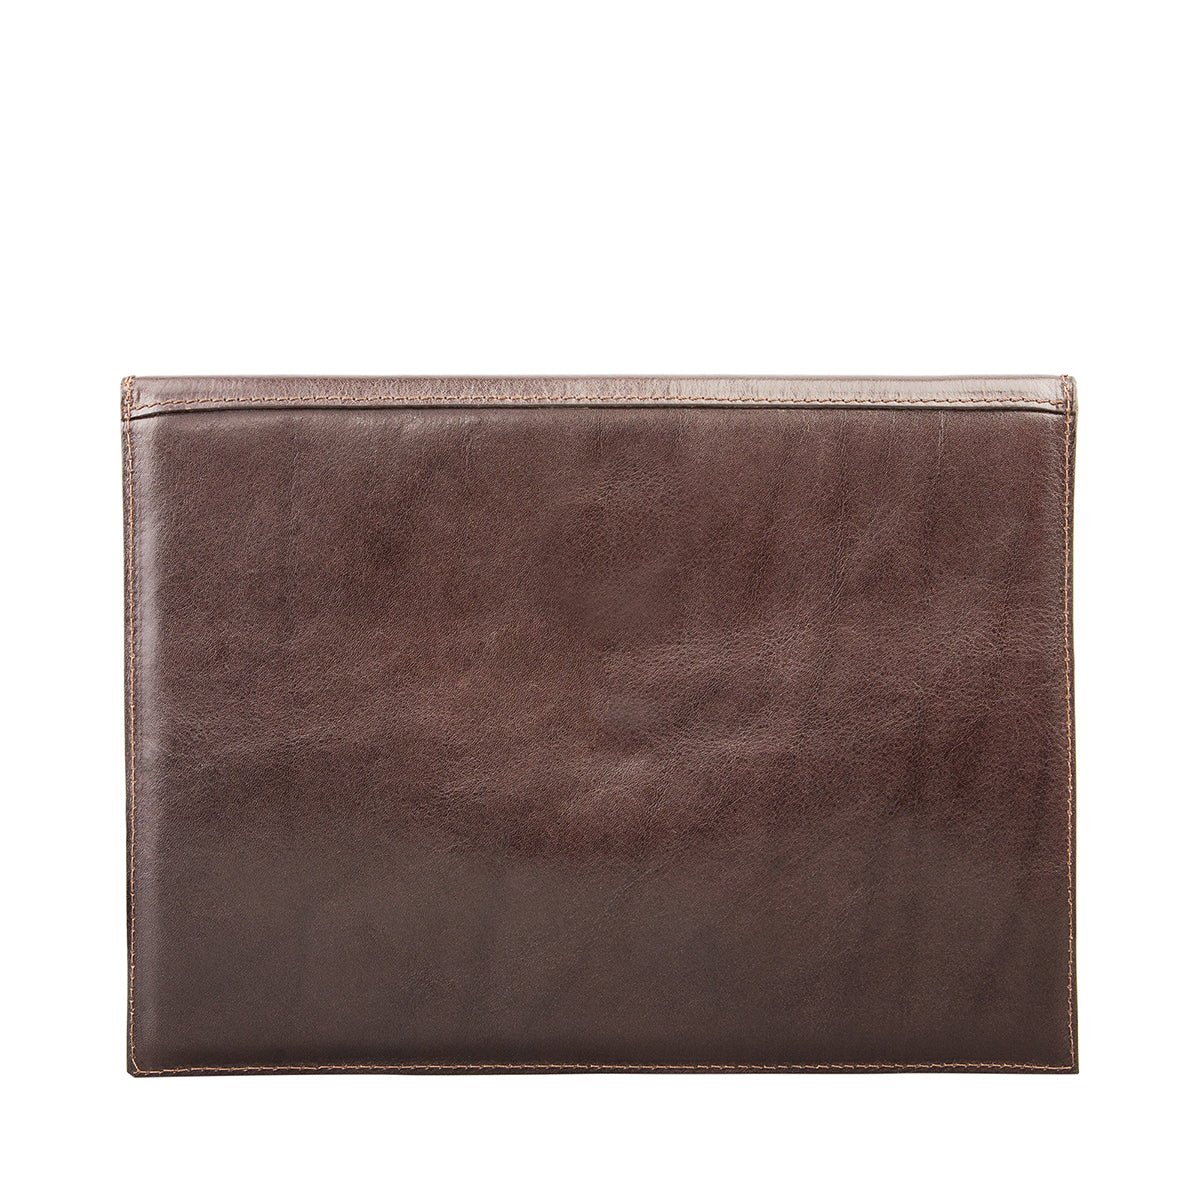 Image 2 of the 'Pico' Dark Chocolate Veg-Tanned Leather Mini Tablet Case